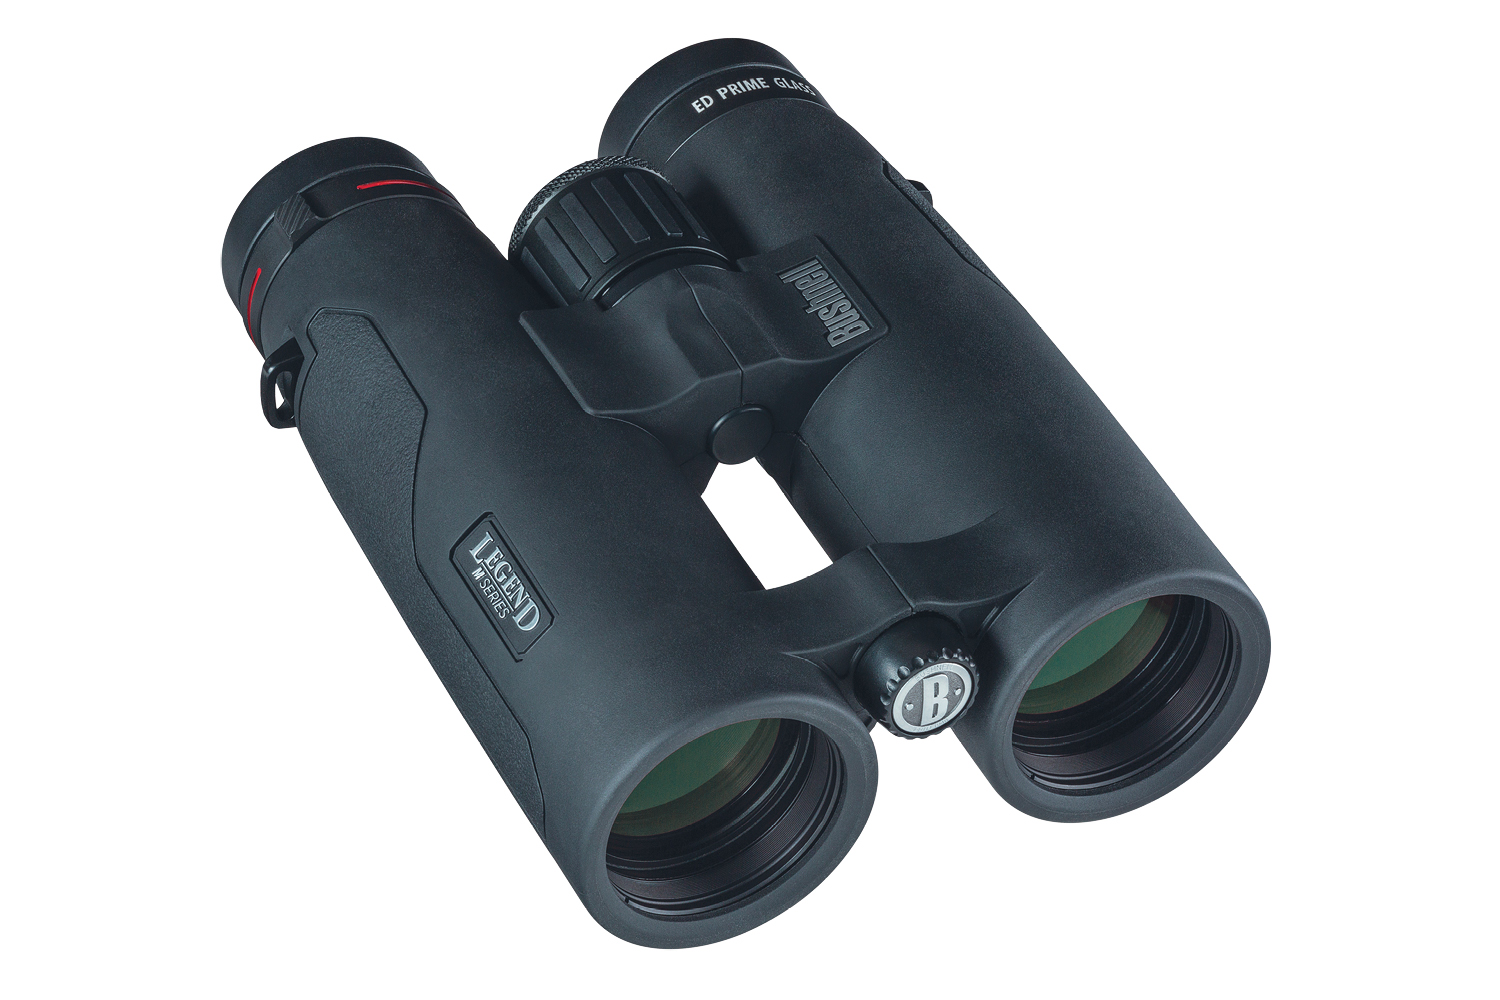 Бинокль Bushnell LEGEND M-SERIES 8x42 бинокль yukon point 8x42